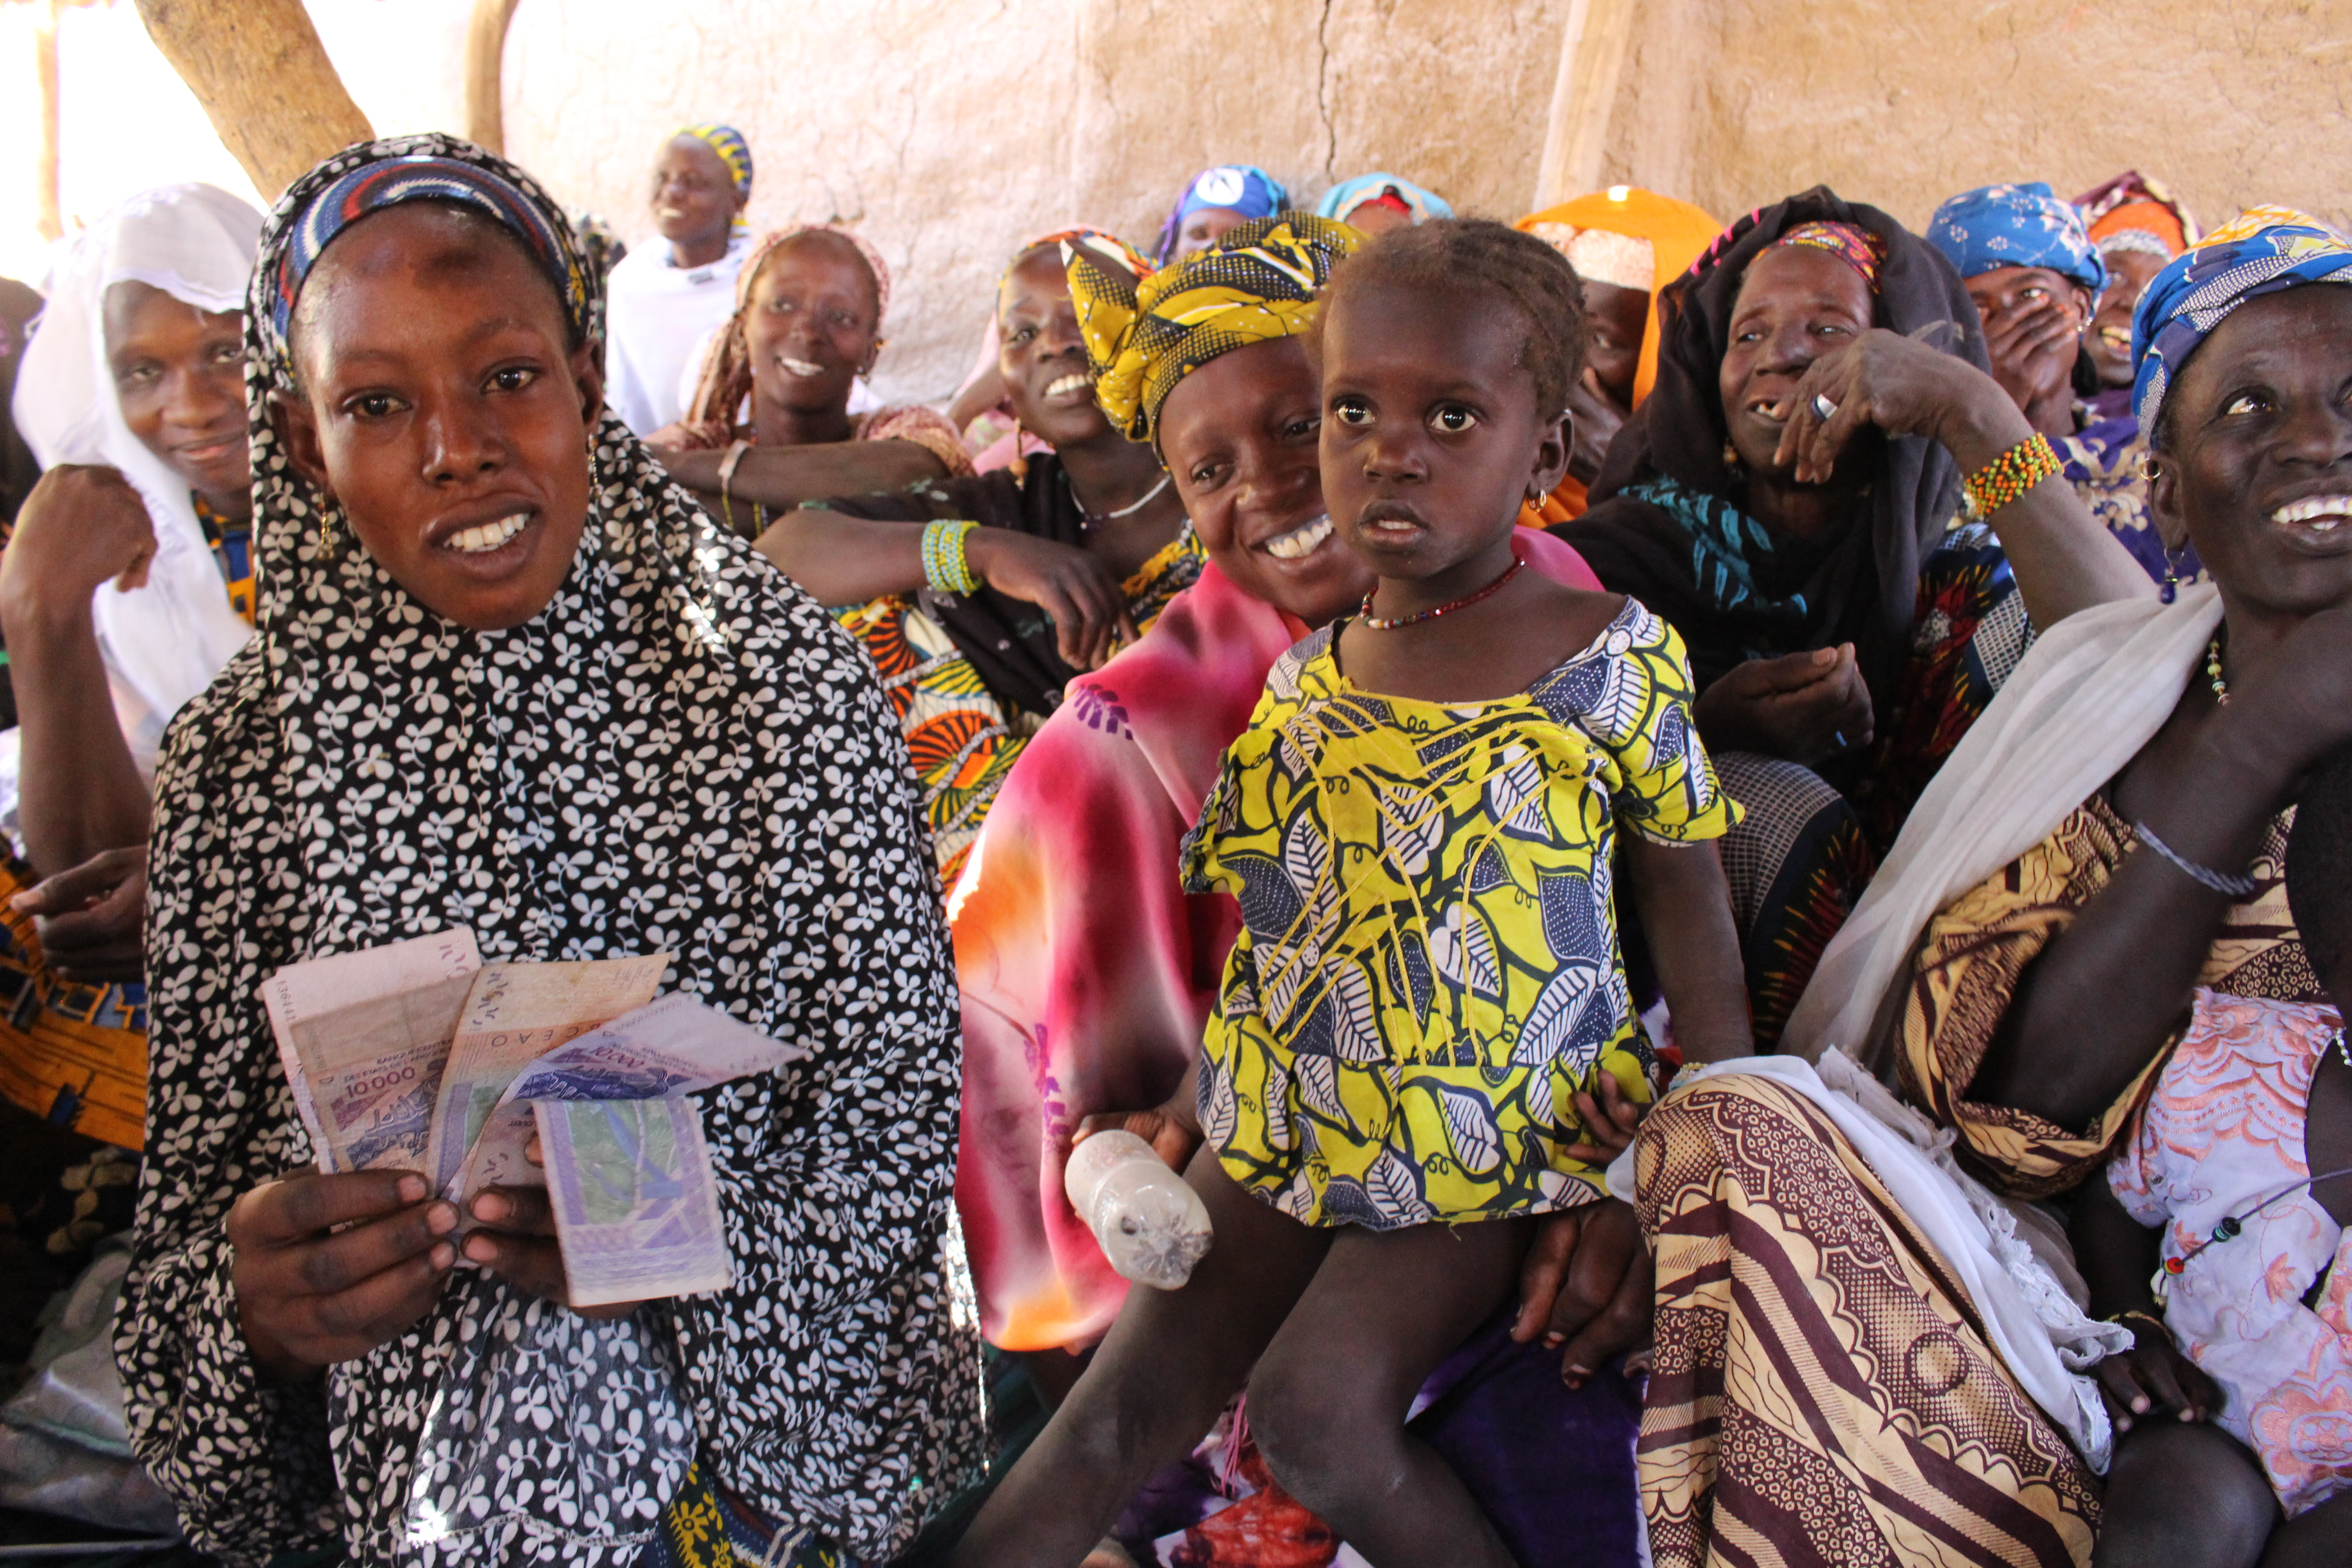 Providing financial and in-kind support in Mali's Kayes region